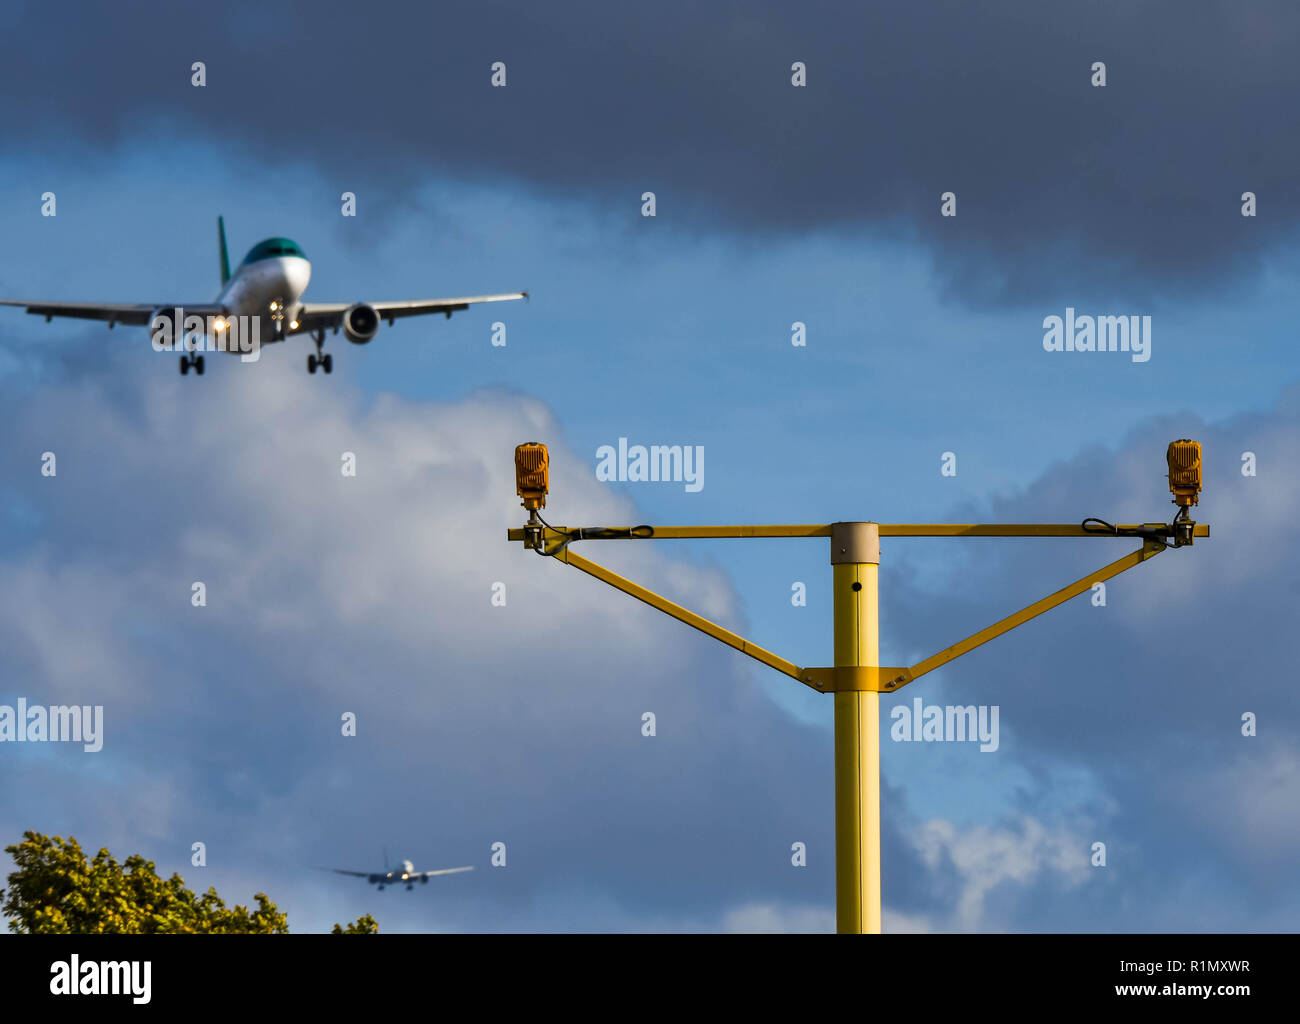 LONDON, ENGLAND - NOVEMBER 2018: Landing lights at London Heathrow Airport with an Aer Lingus jet on final approach. Another aircraft can be seen in t - Stock Image